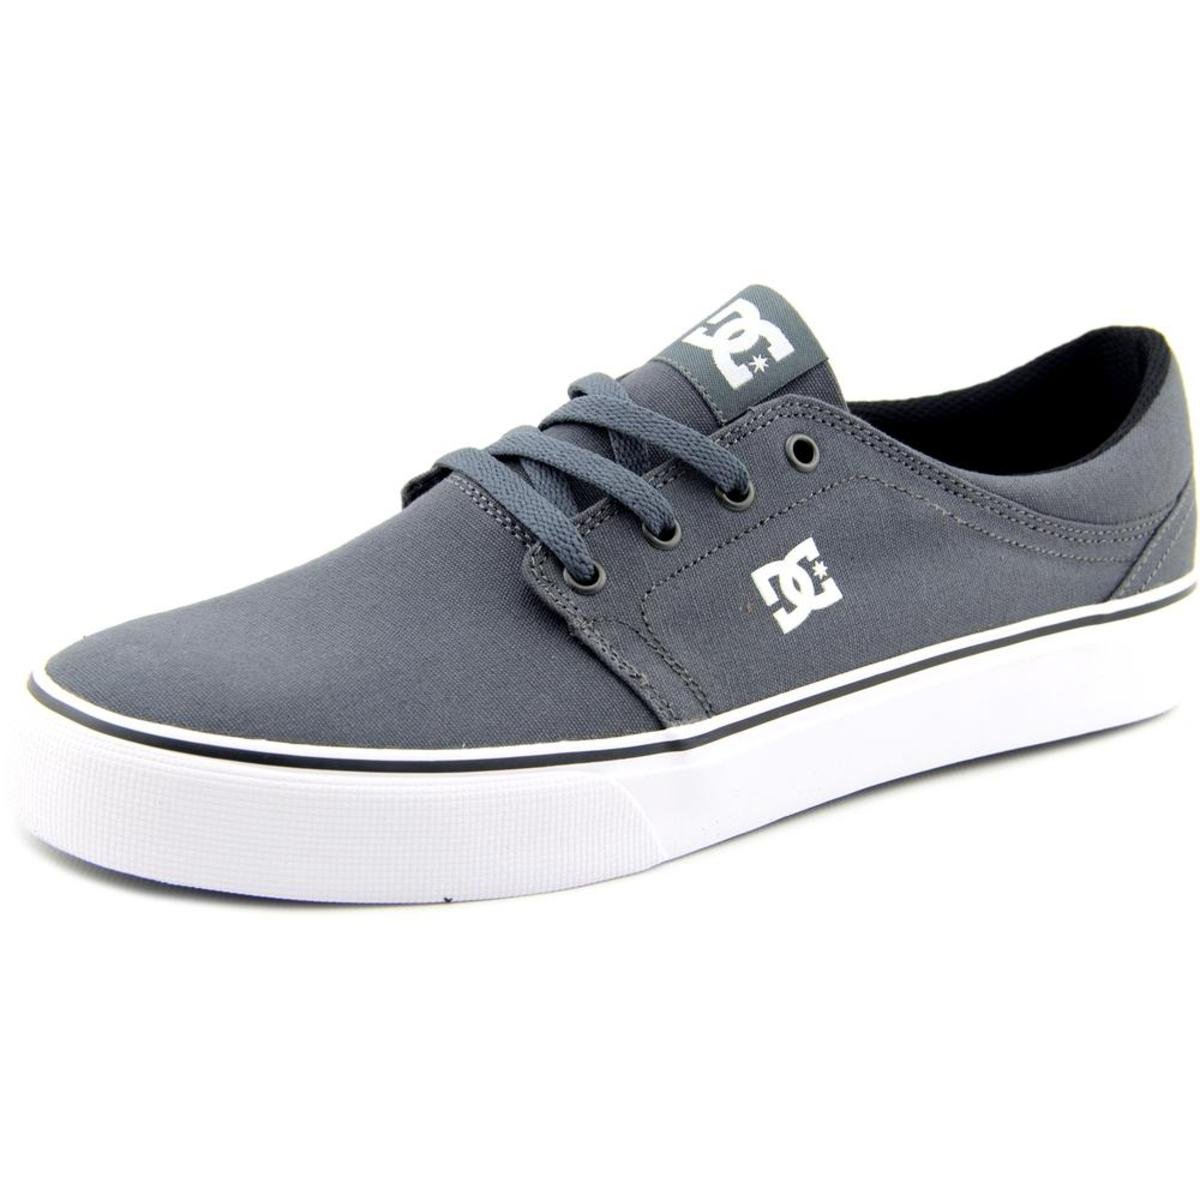 DC Men's Trase TX Skate Shoe, Grey/Grey/White, 10 M US